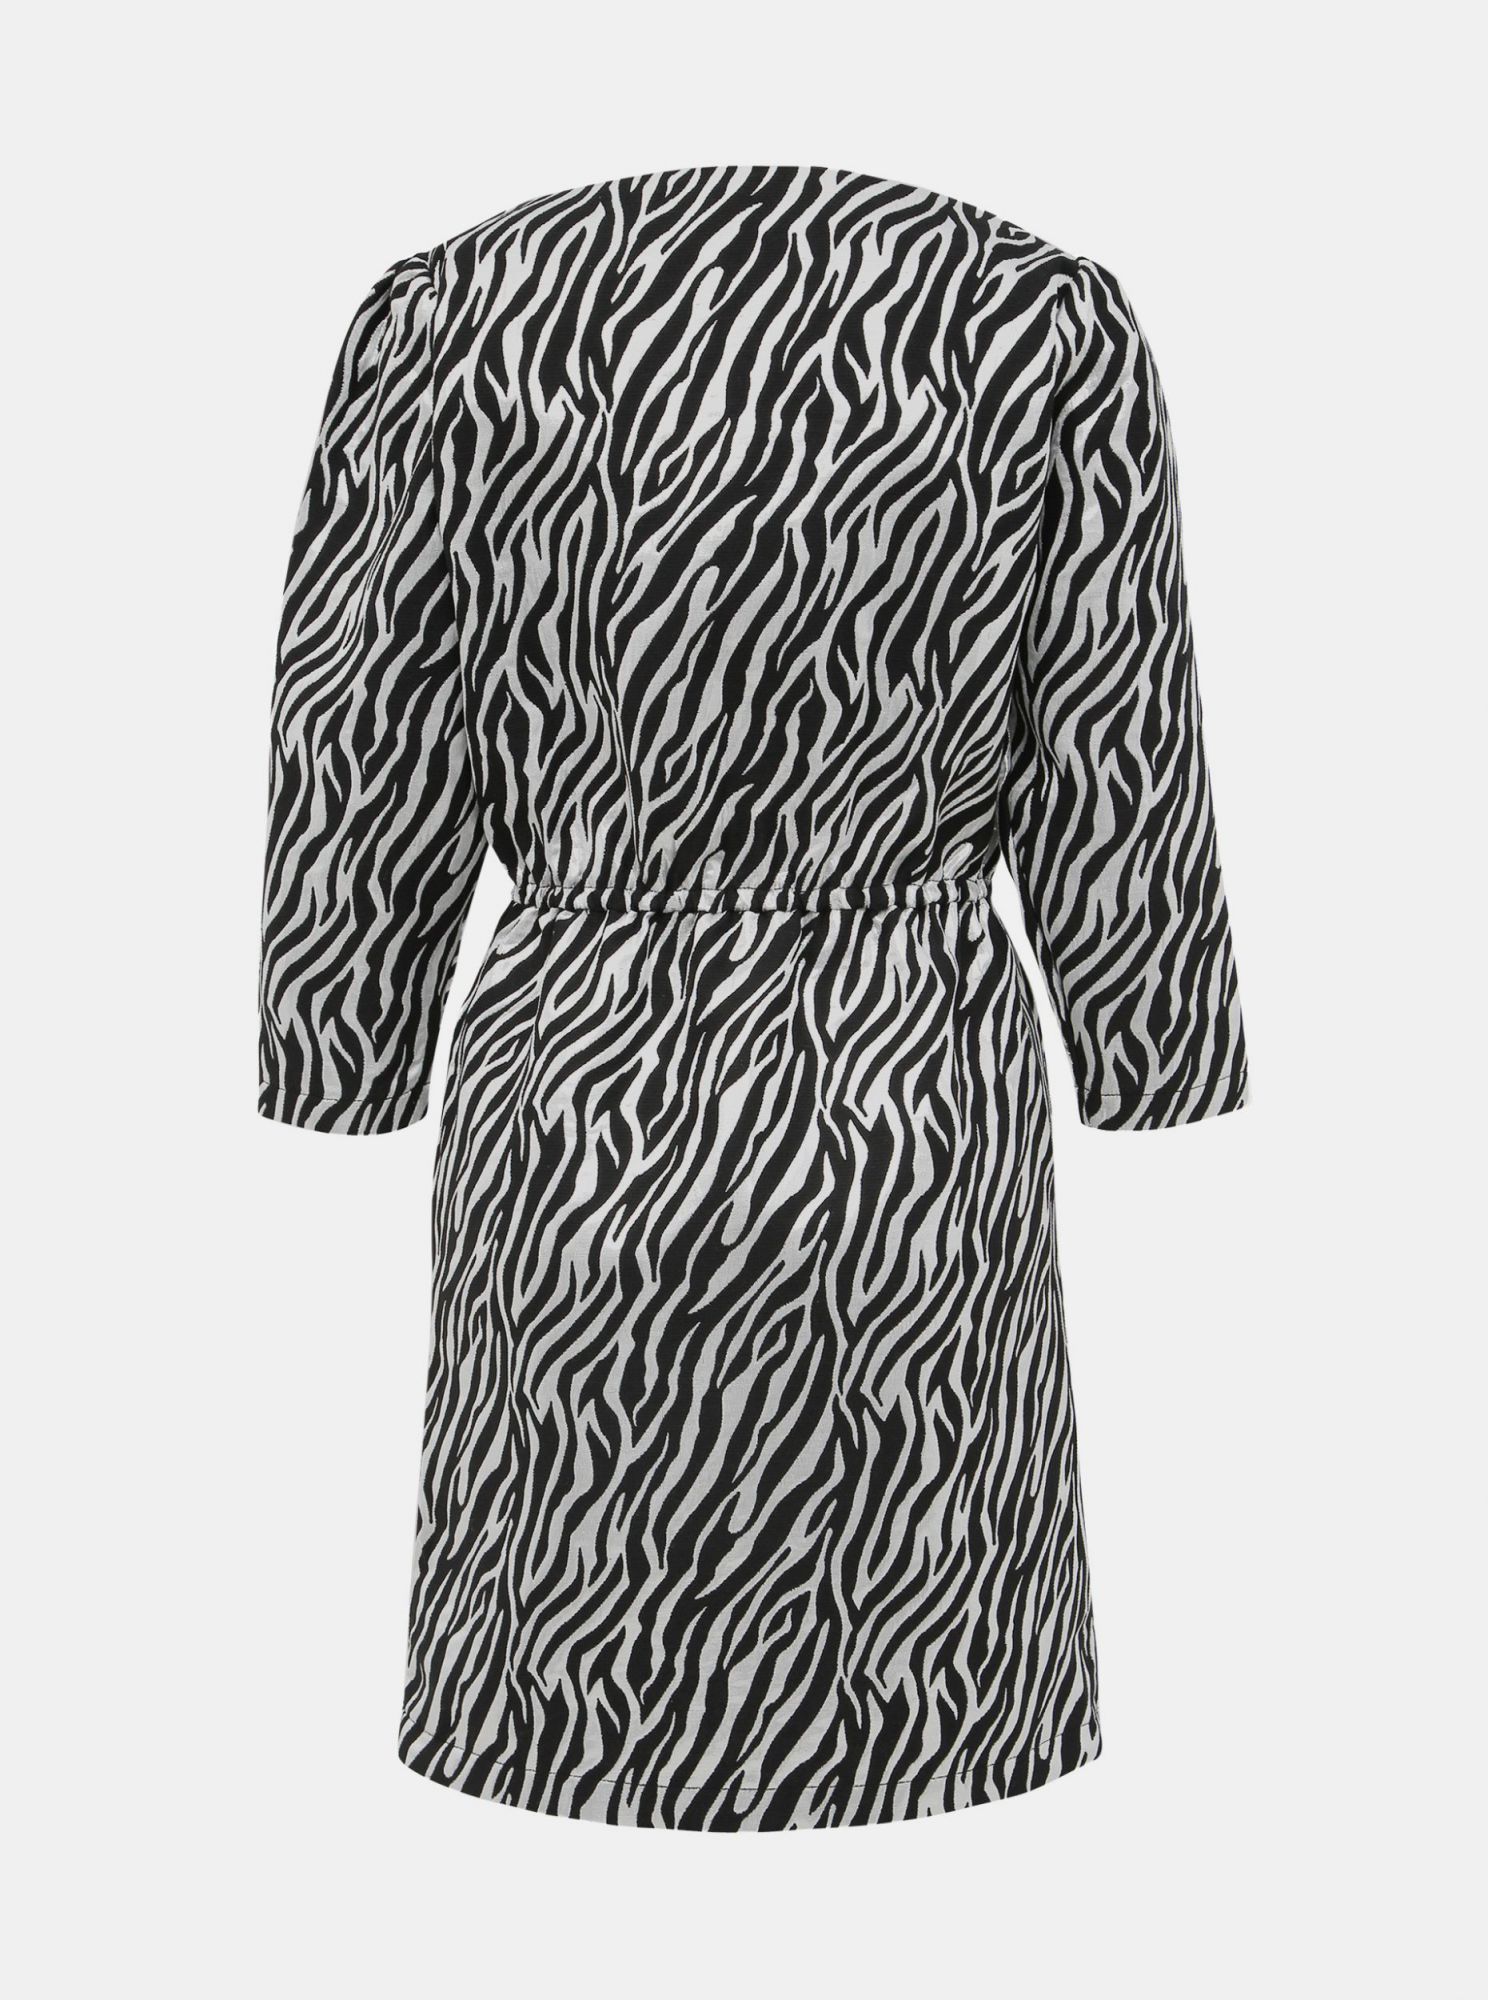 Dress in silver and black with a ribbed pattern VILA Arna